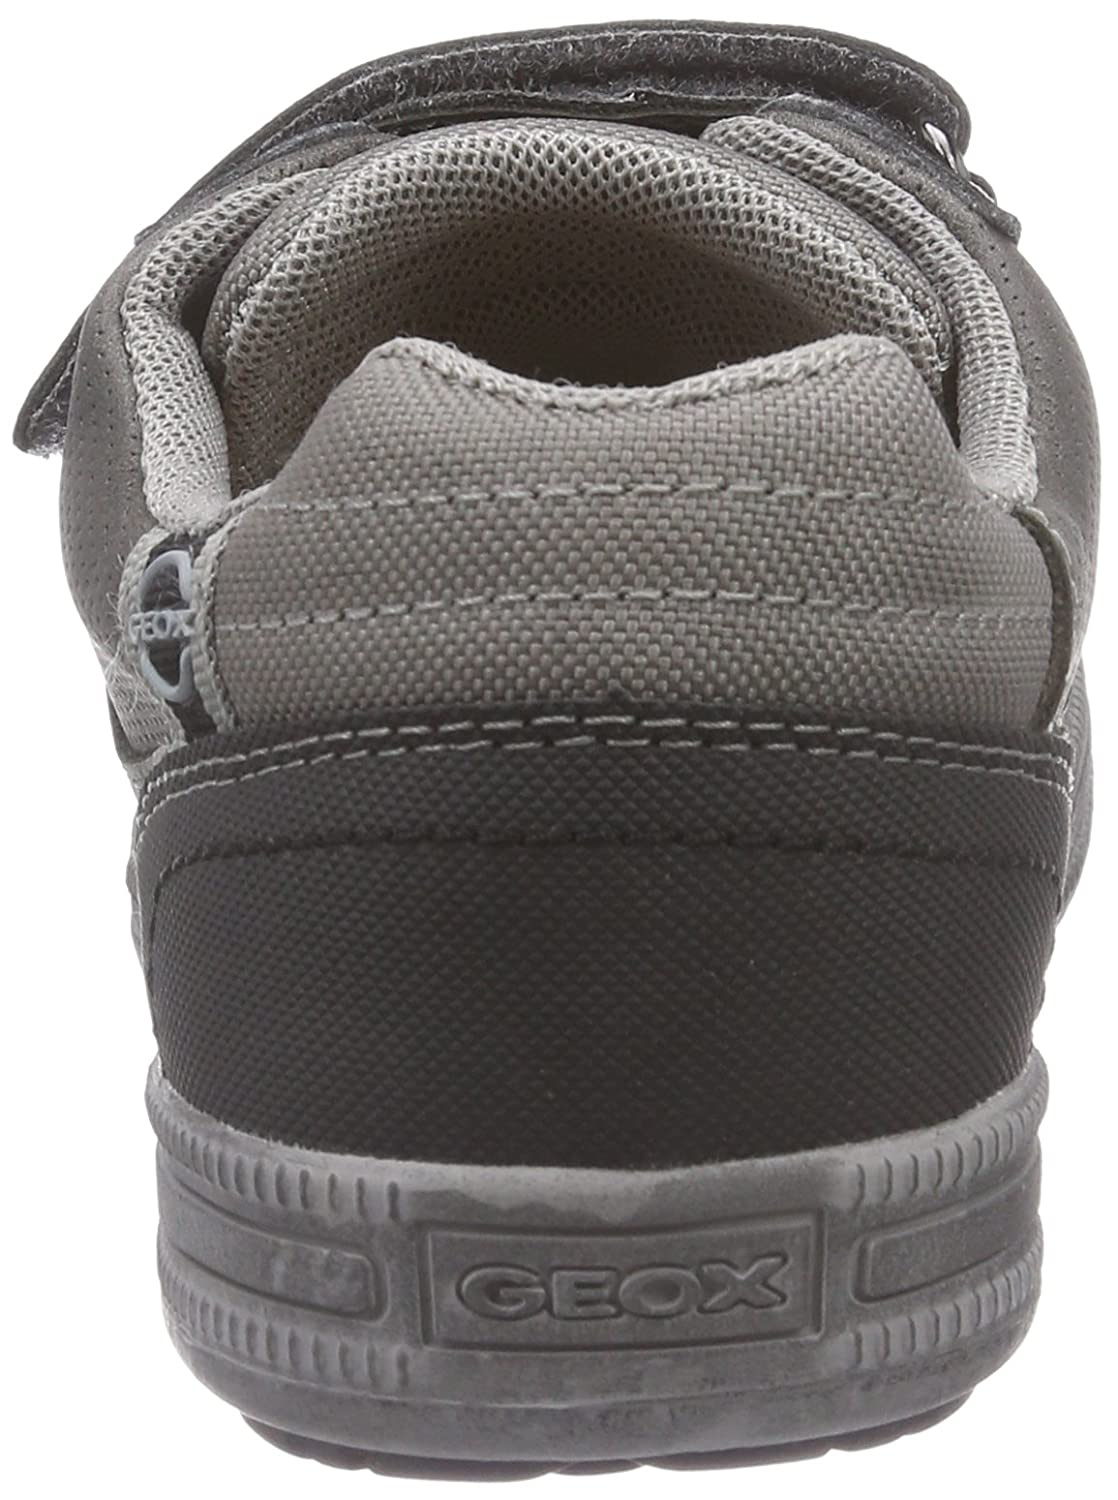 Geox J Elvis 26 Sneaker Toddler//Little Kid//Big Kid